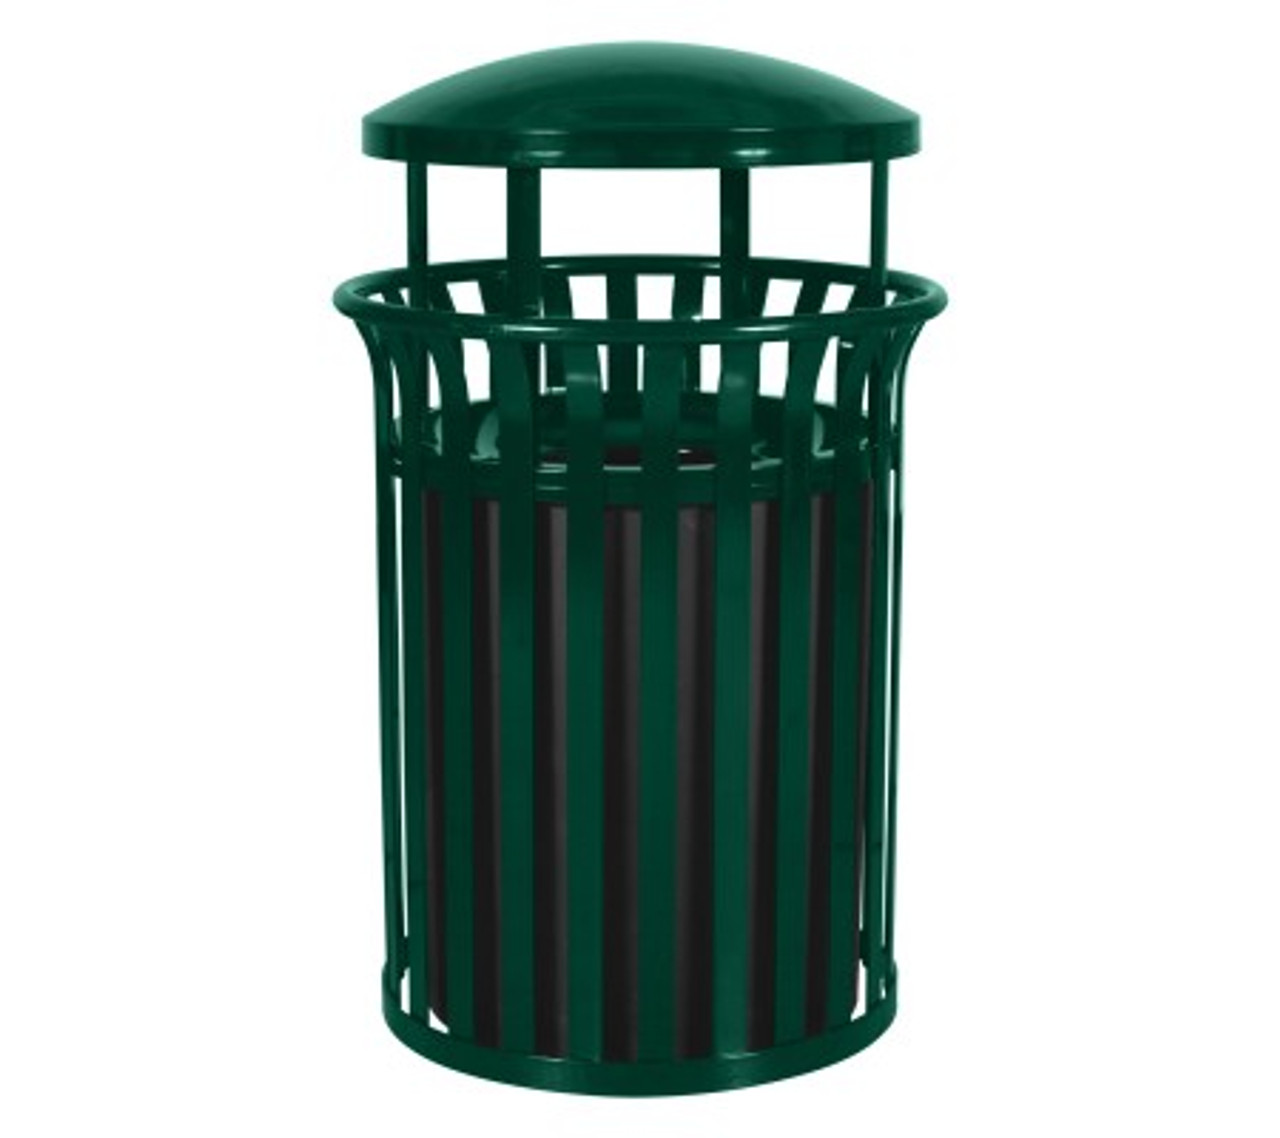 37 Gallon Metal Outdoor Street Scape Trash Can with Rain Cap Green